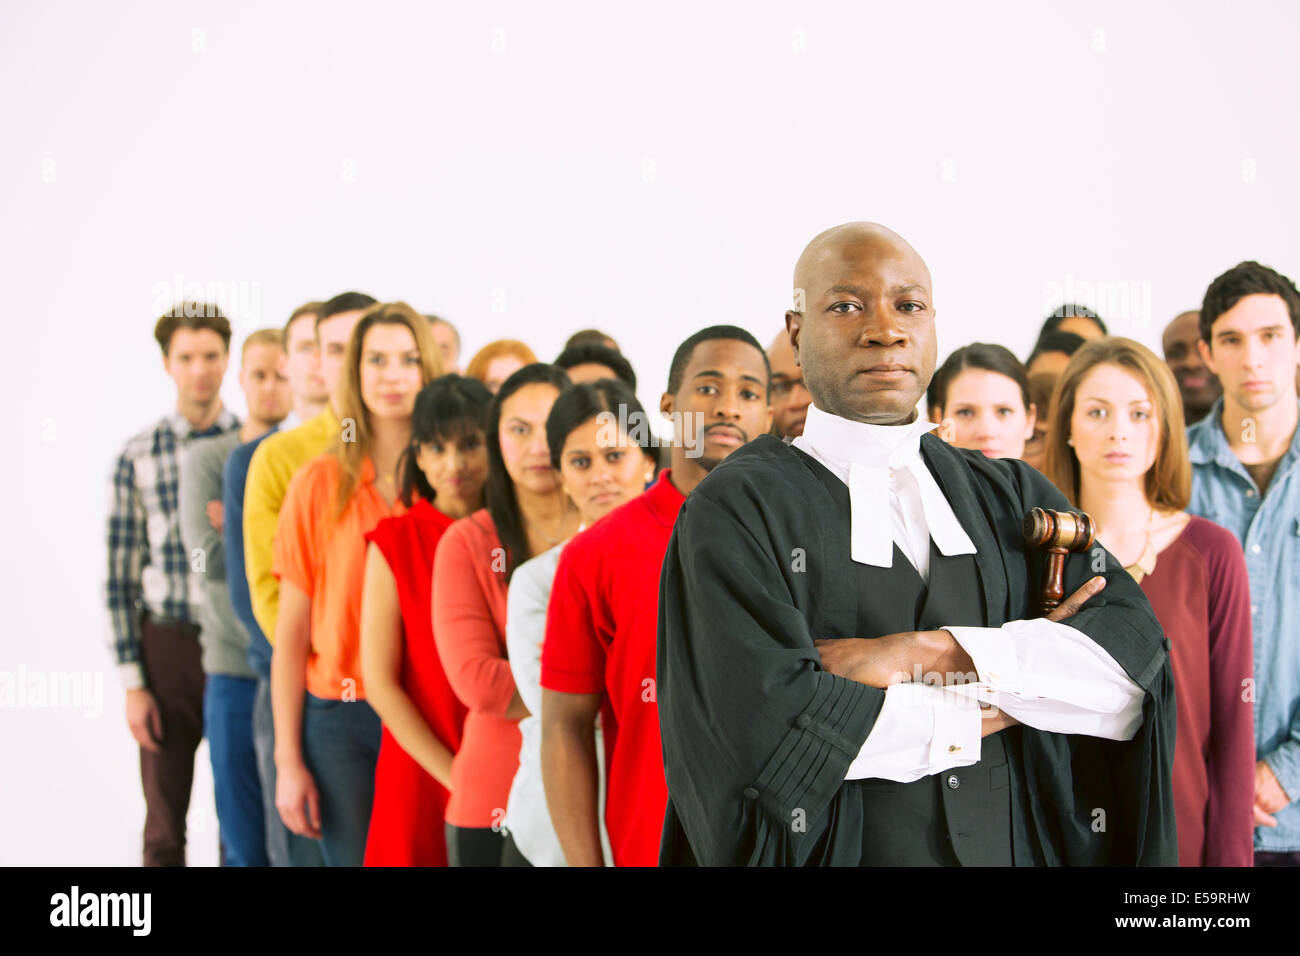 Serious judge in front of crowd - Stock Image